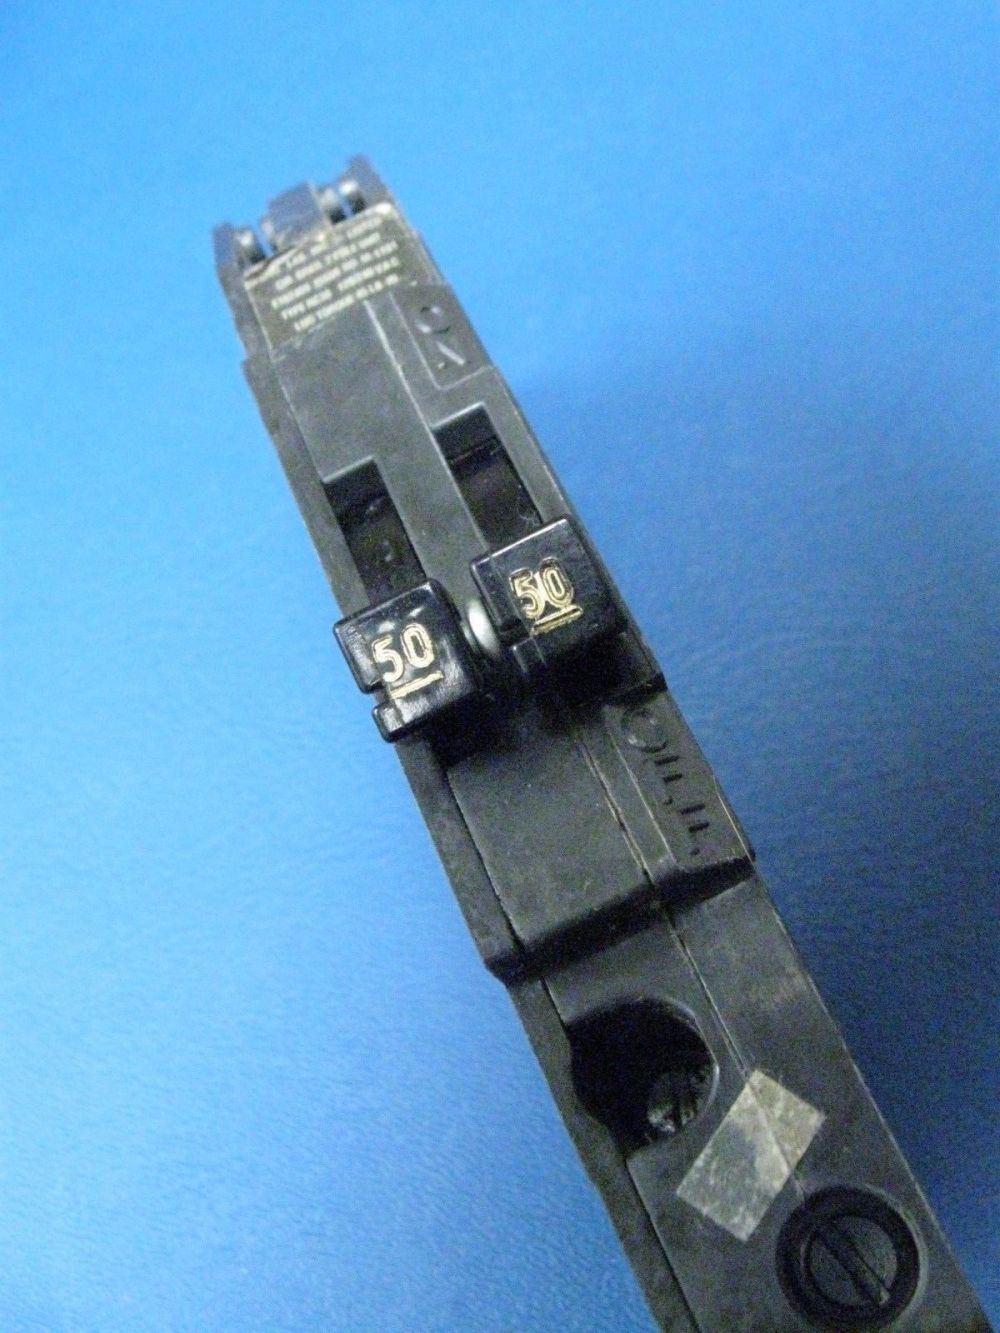 medium resolution of home improvement circuit breakers fuse boxes 20a zinsco or gte sylvania 20 amp double or